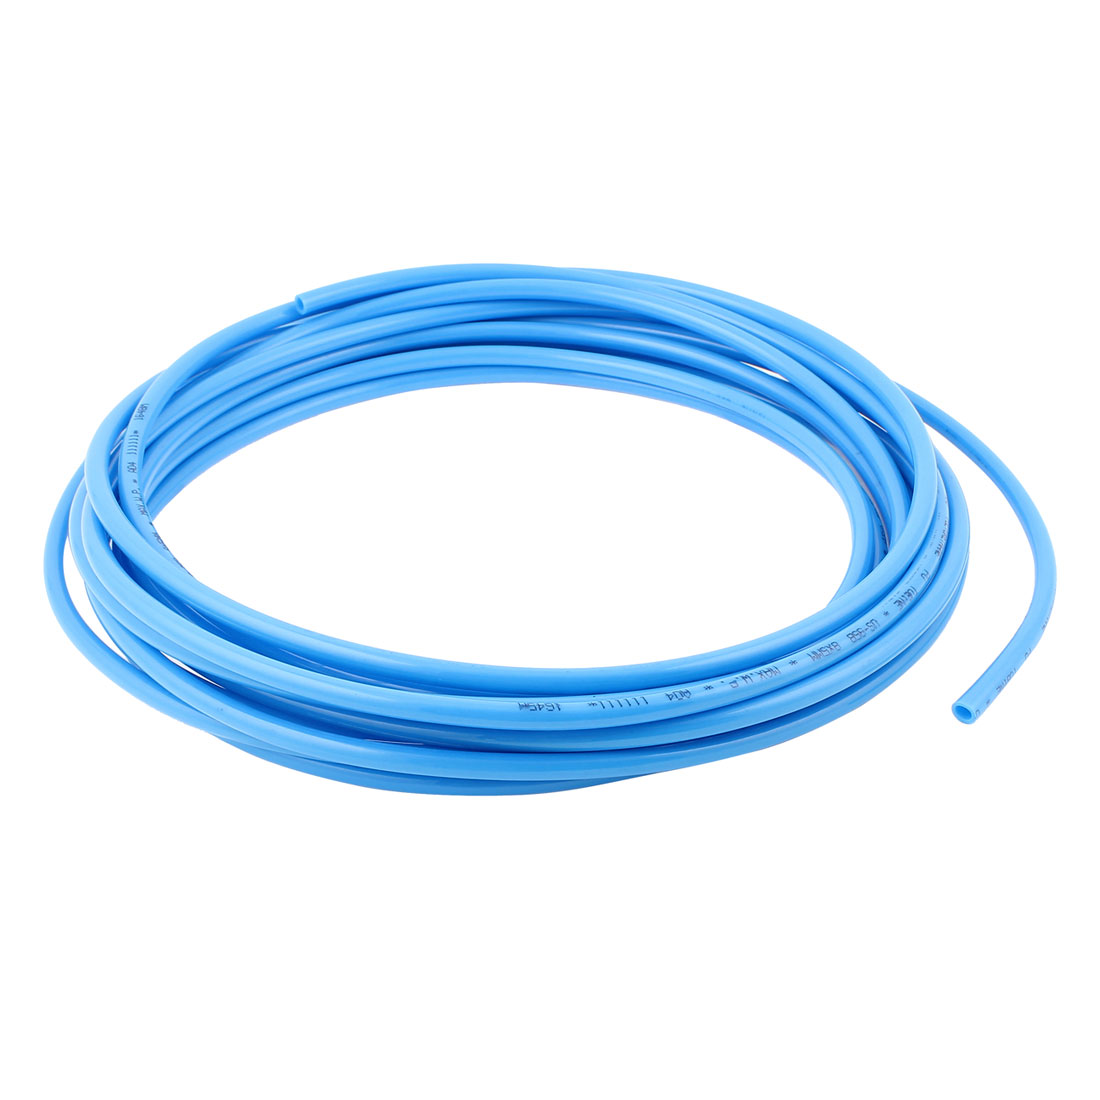 8mm x 5mm Pneumatic Air Compressor Tubing PU Hose Tube Pipe 10m Blue